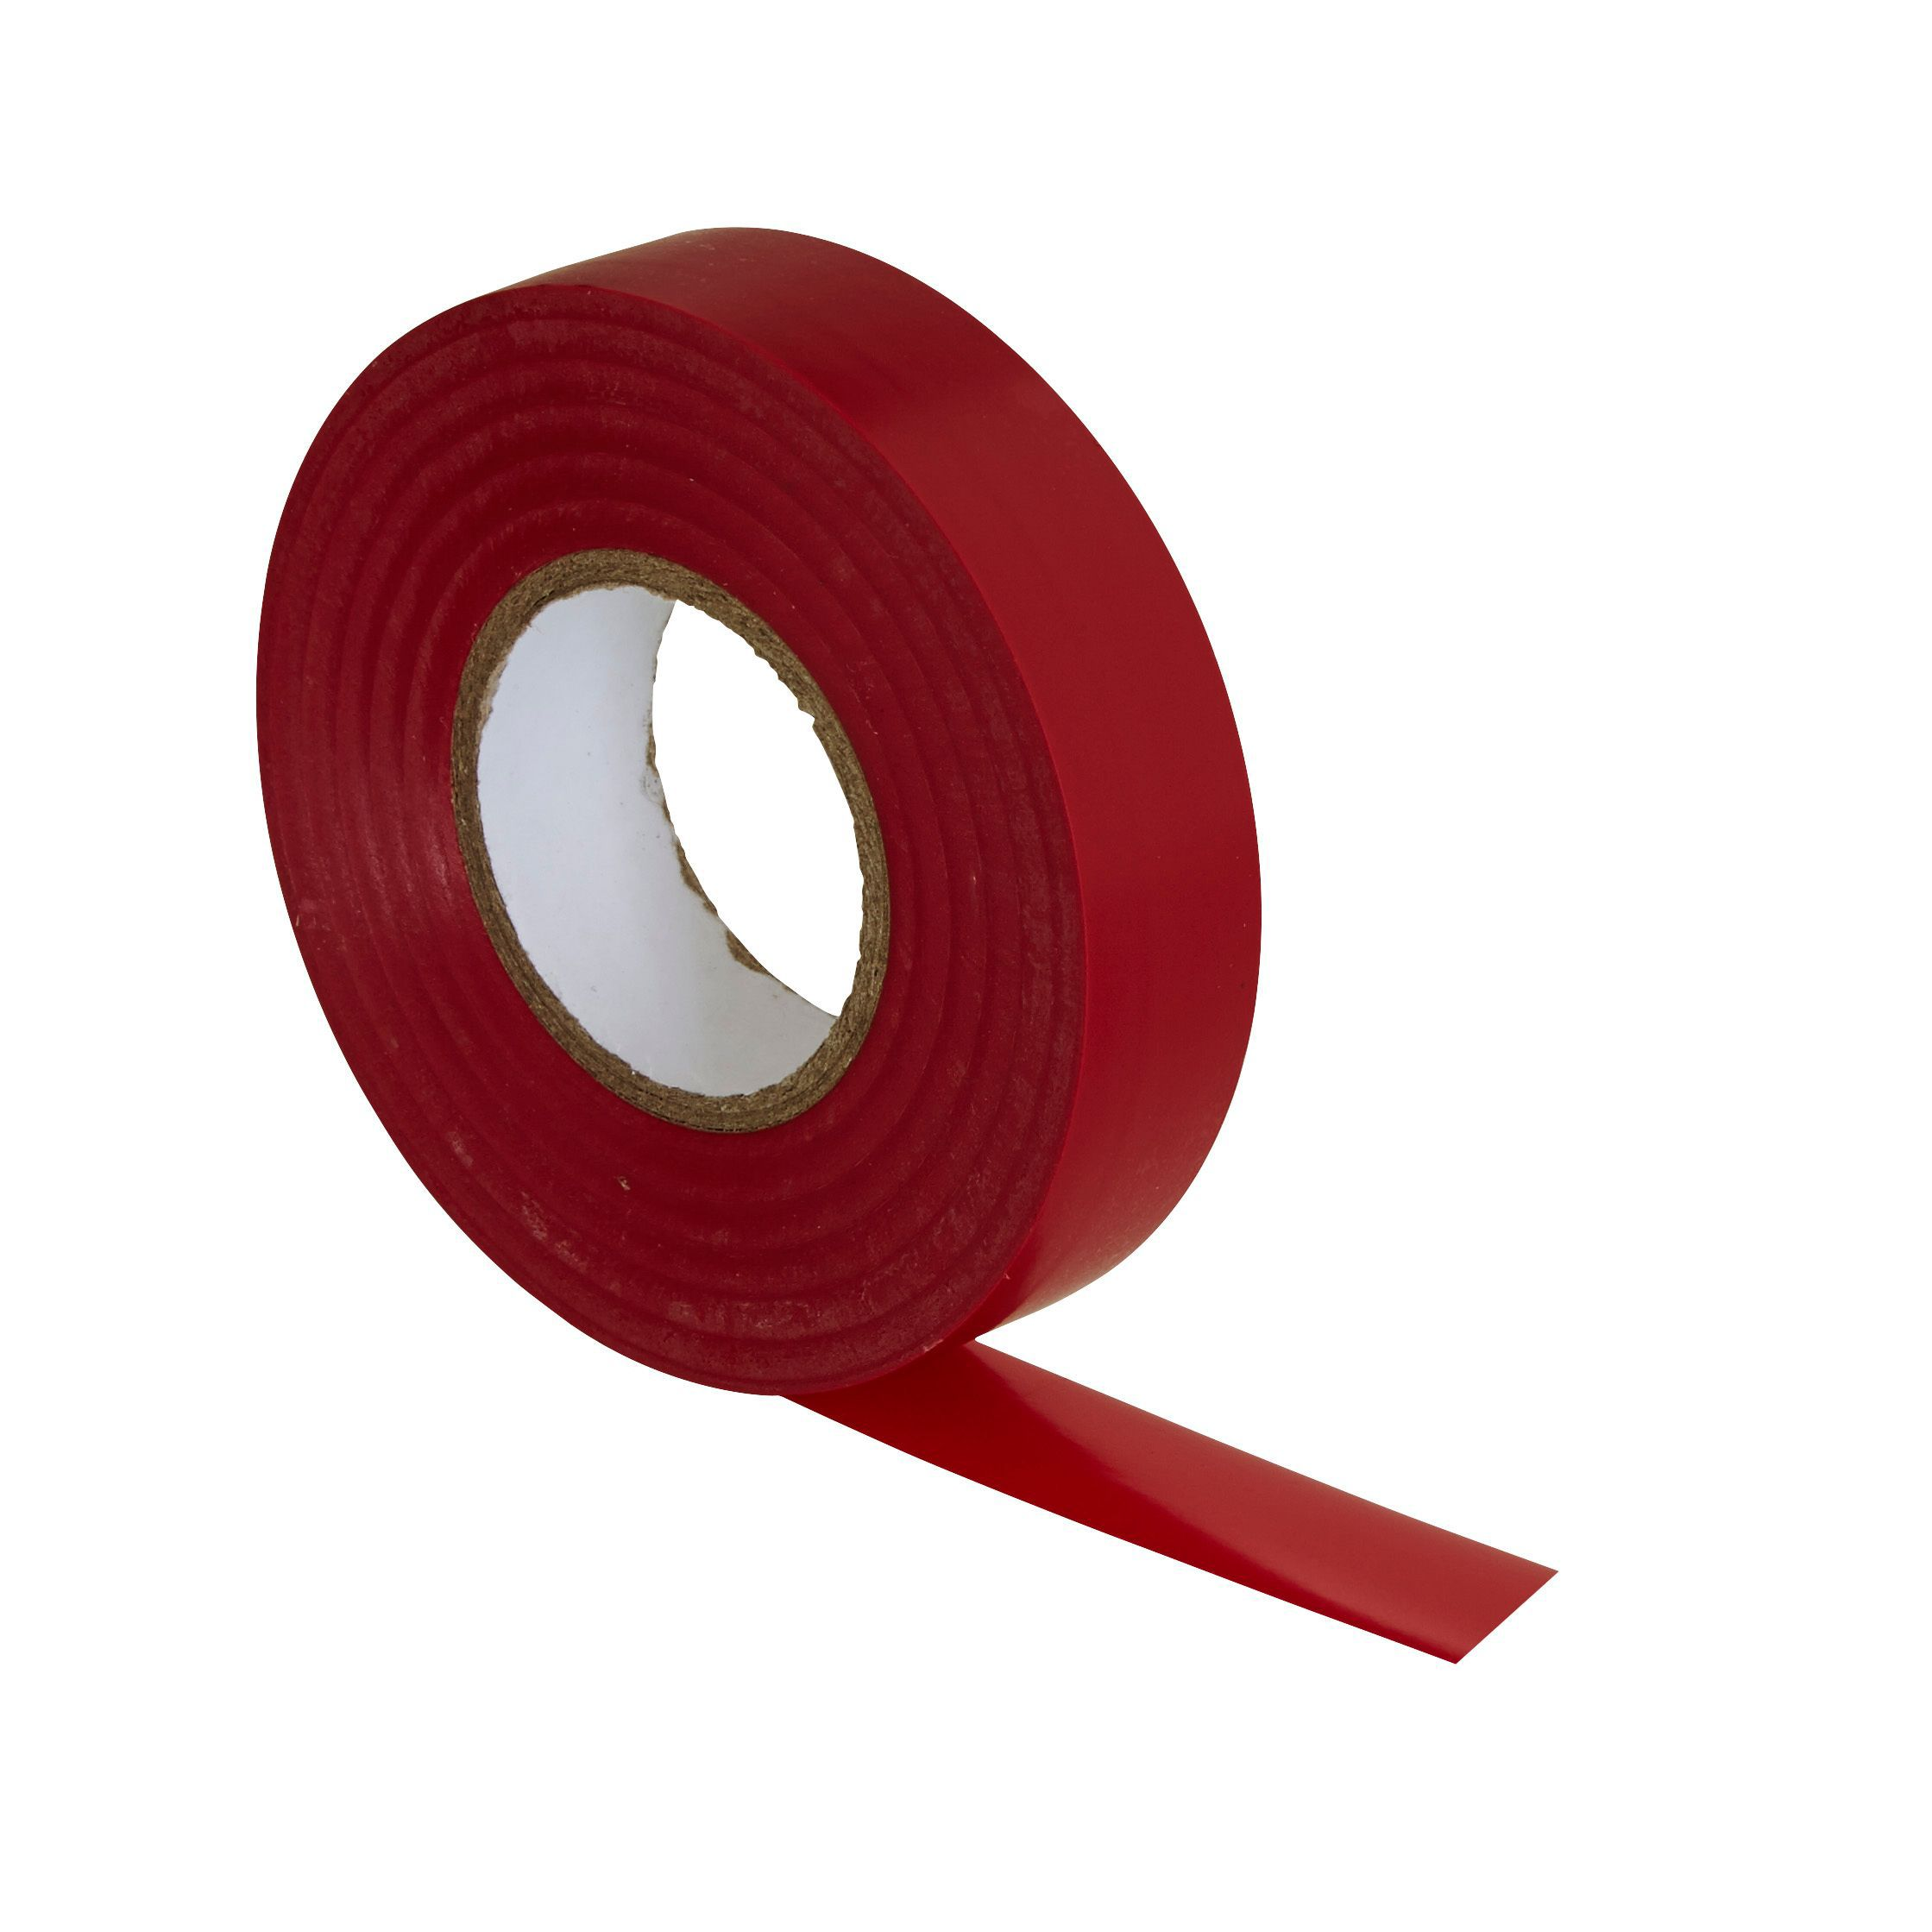 b q red insulation tape l 33m w 19mm departments diy. Black Bedroom Furniture Sets. Home Design Ideas